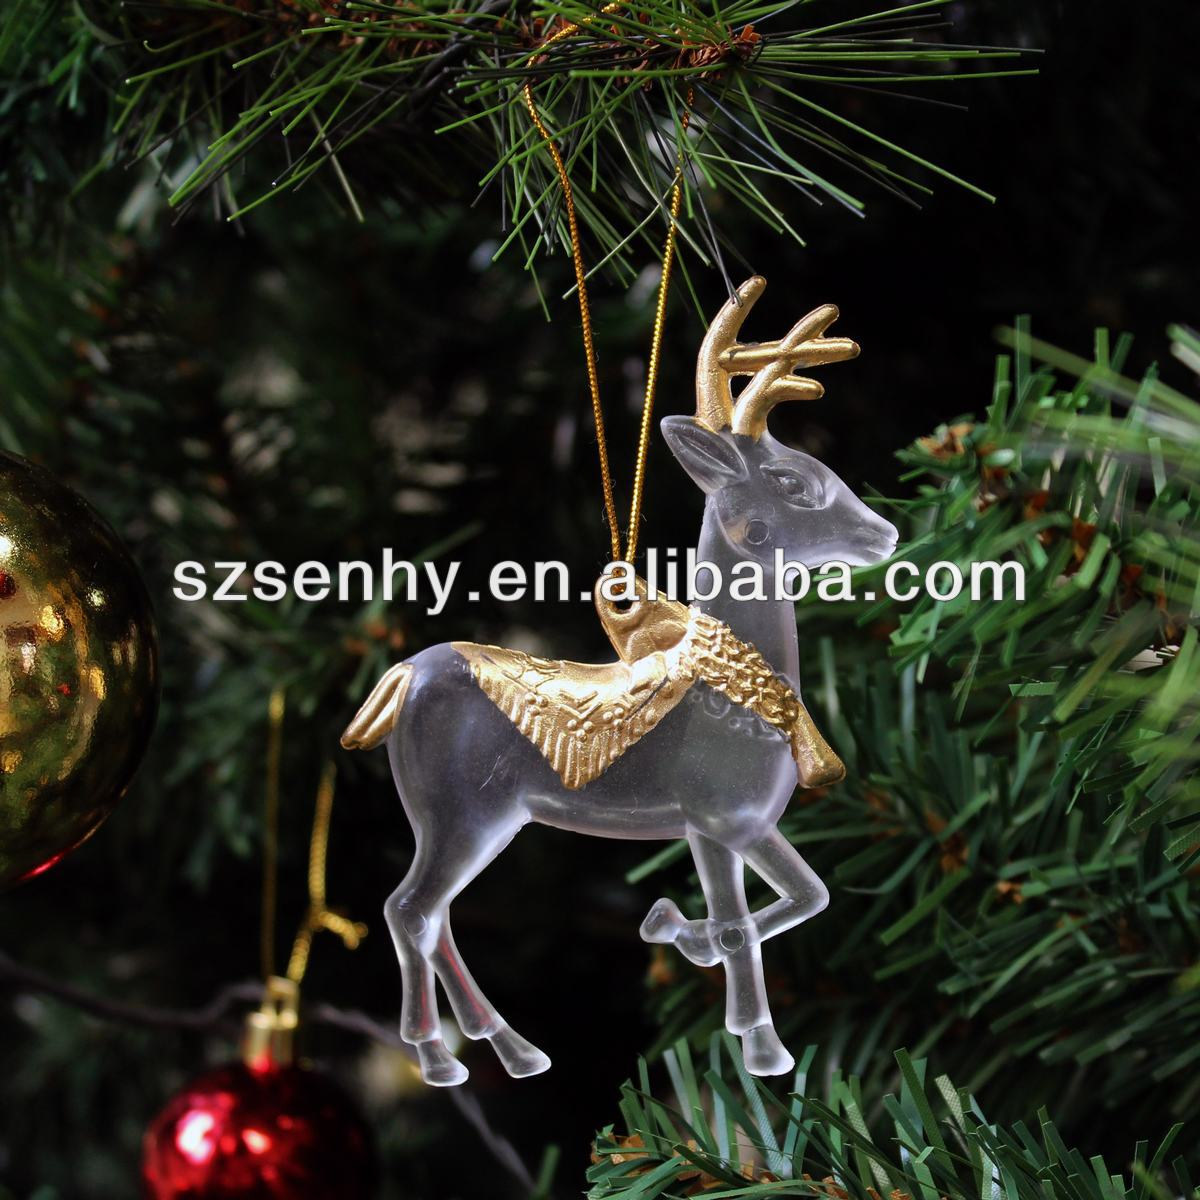 Small Plastic Lowes Outdoor Christmas Decorations Deer Buy Lowes Outdoor Christmas Decorations Deer Christmas Decorations Deer Christmas Outdoor Decorations Deer Product On Alibaba Com